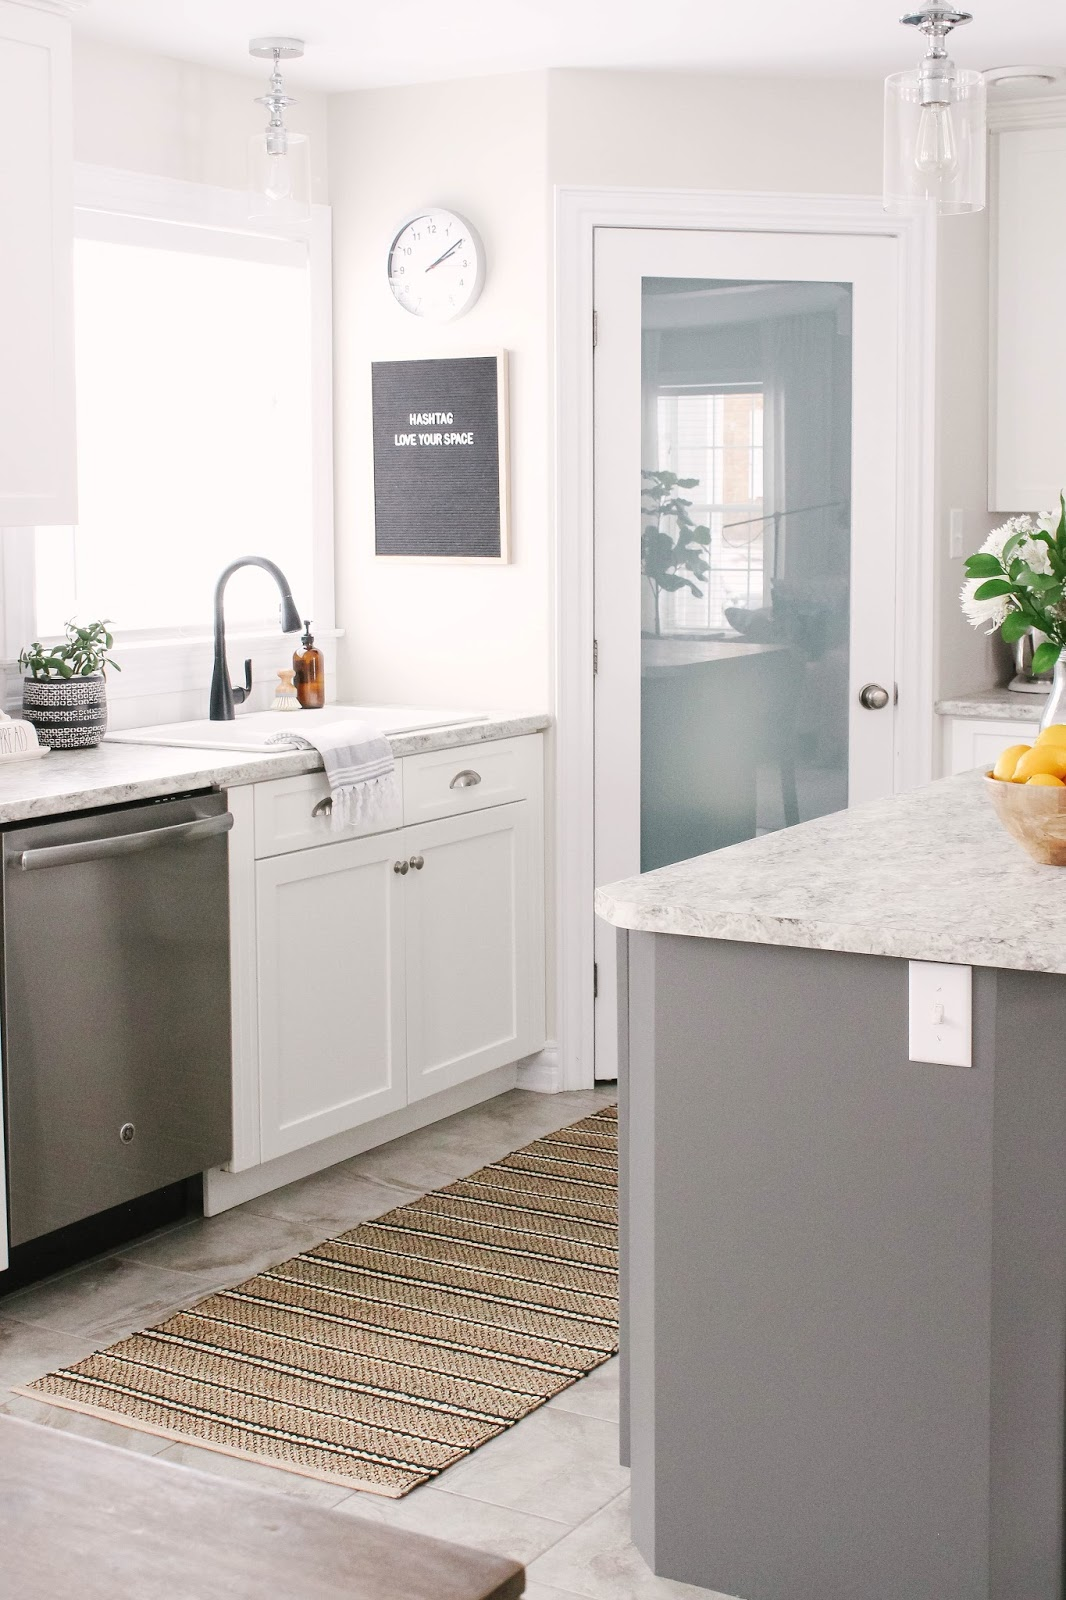 How To Paint Your Kitchen Island In Easy Steps House Of Hire - Who to hire to paint kitchen cabinets